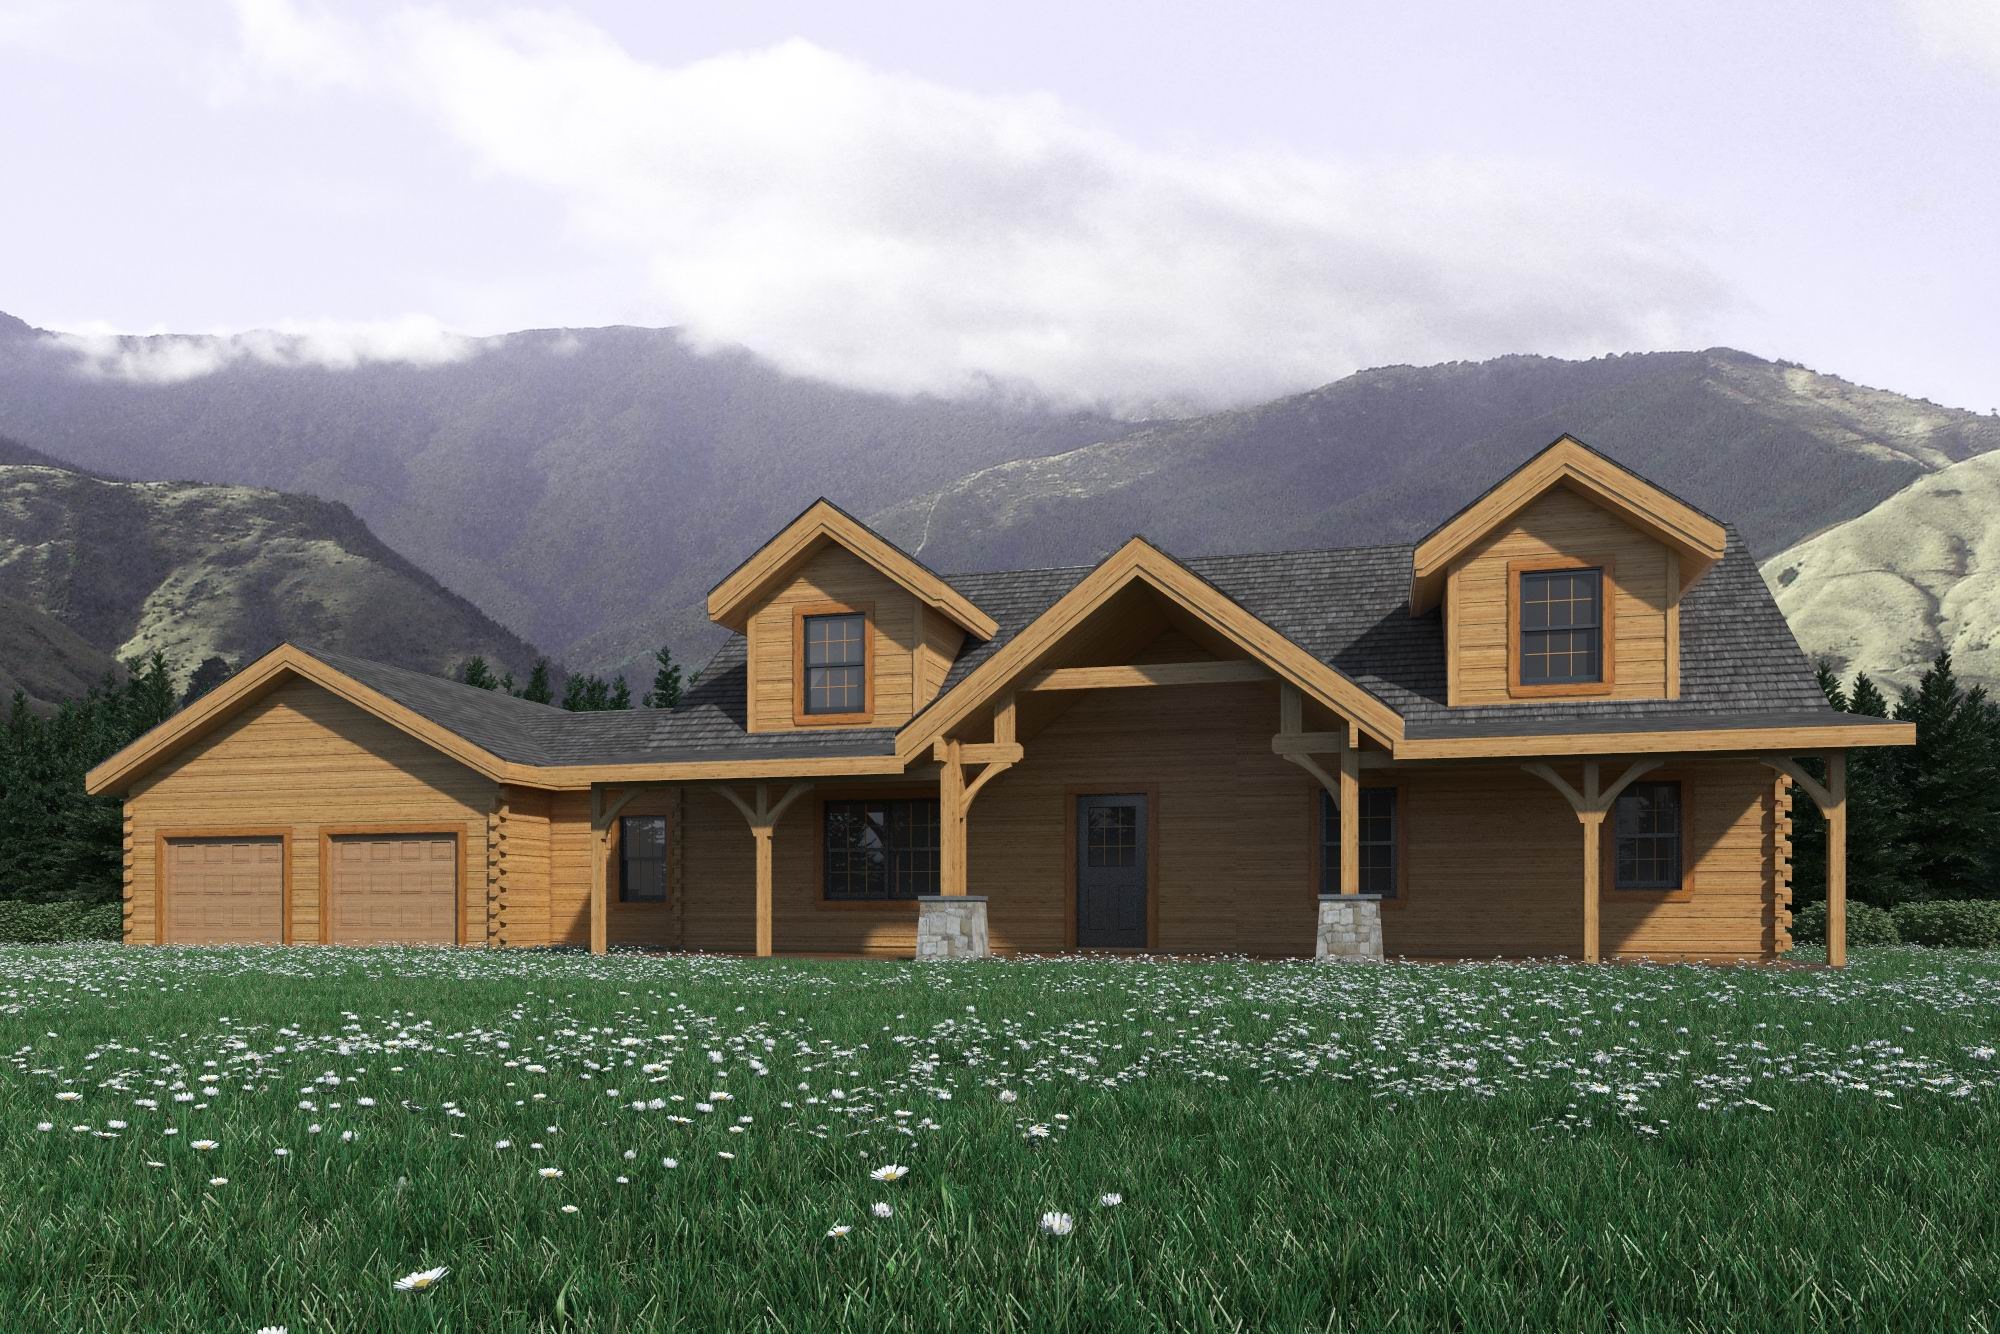 Mountain view home plan by countrymark log homes for Mountain log home plans